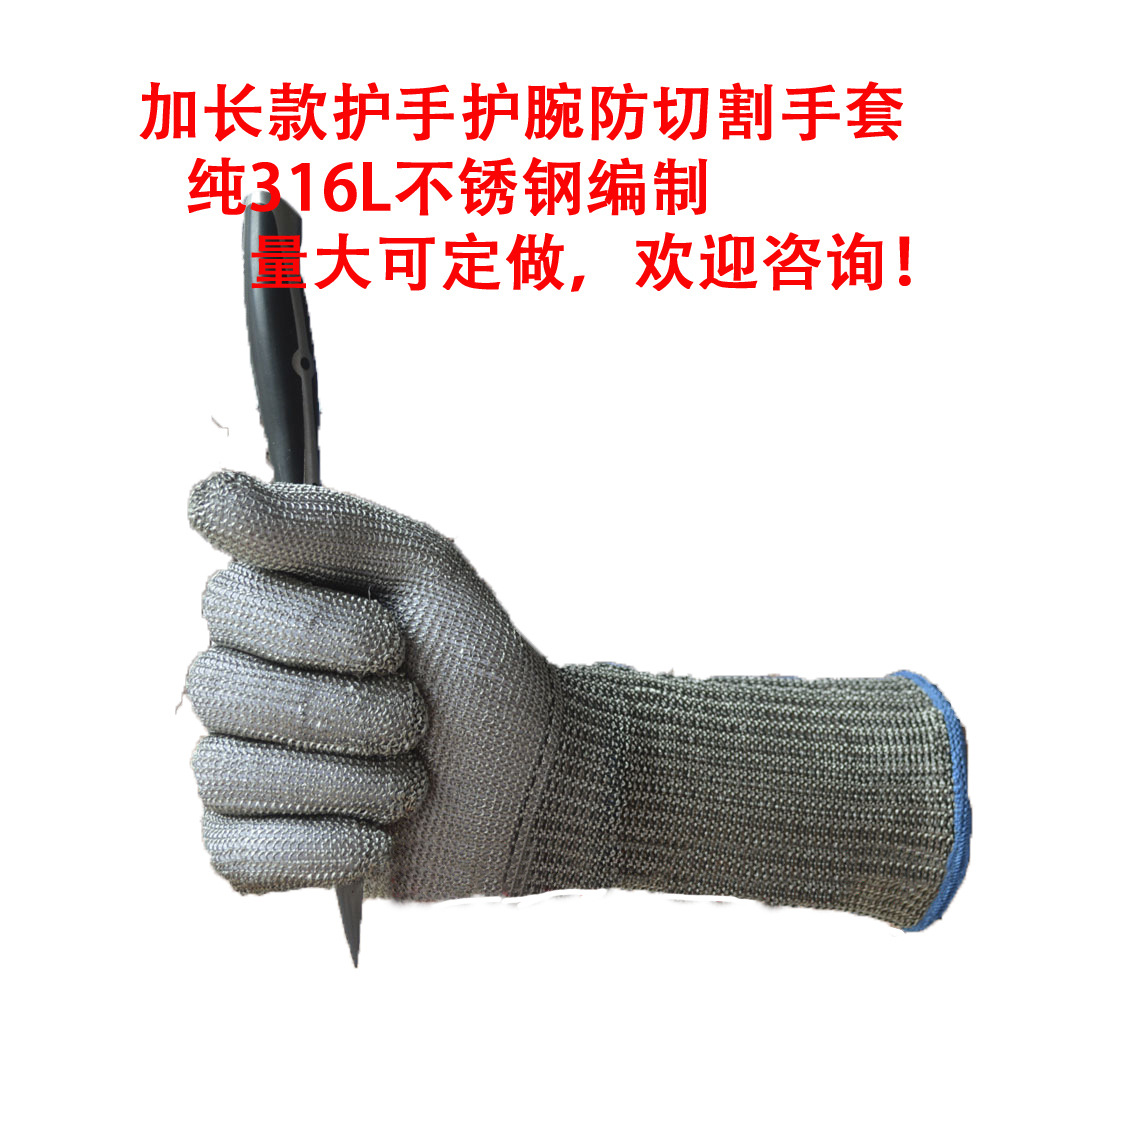 Stainless steel wire cuff longer section Gloves labor insurance protective metal iron cut-resistant gloves 0 8mm 304 stainless steel wire bright surface diy materialhard steel wire cold rolled